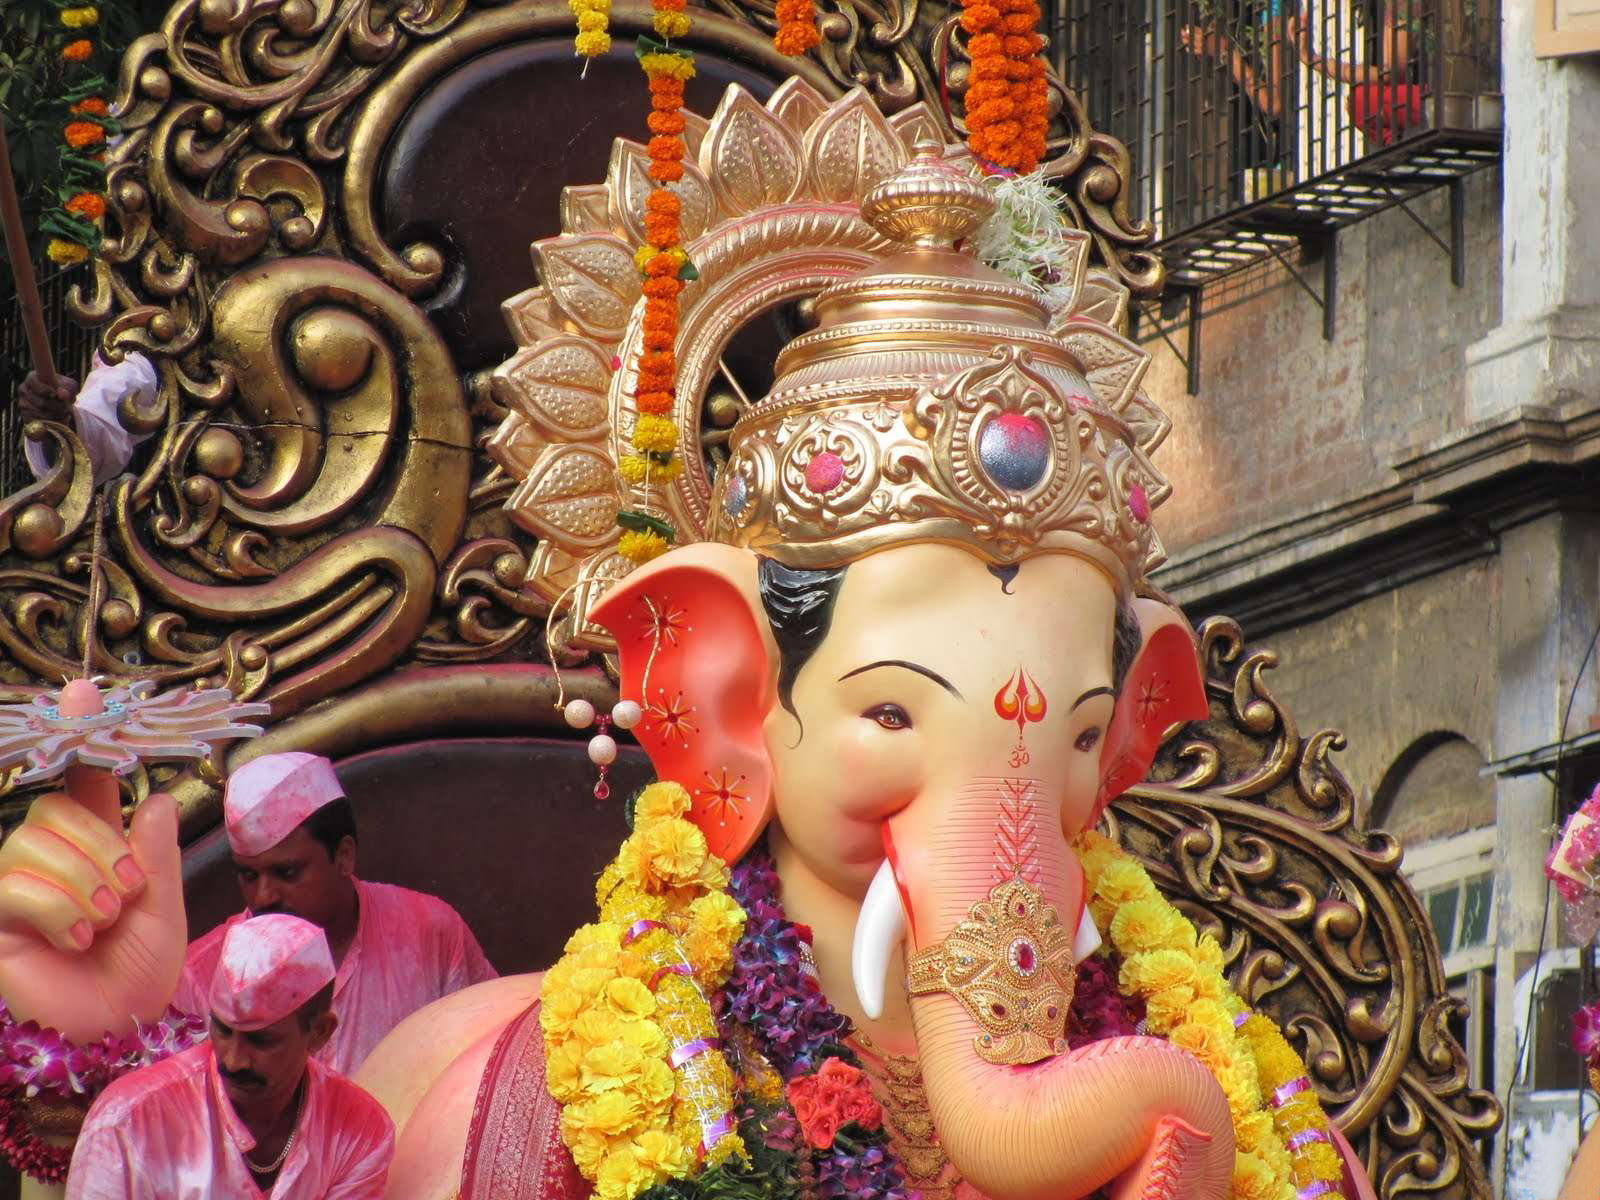 Shree Ganesh Hd Images: [47+] Hindu God HD Wallpapers 1080p On WallpaperSafari